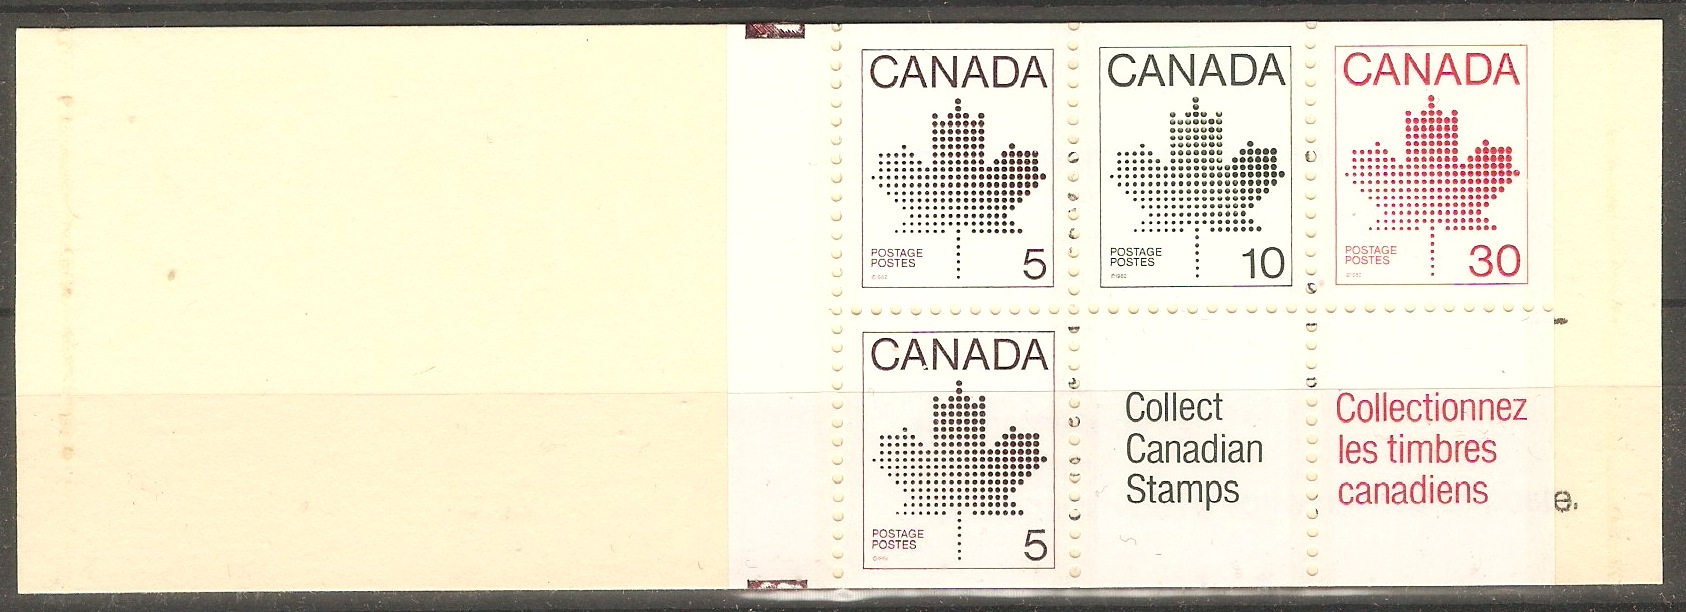 Canada 1982 Stamp booklet. SG1033a.